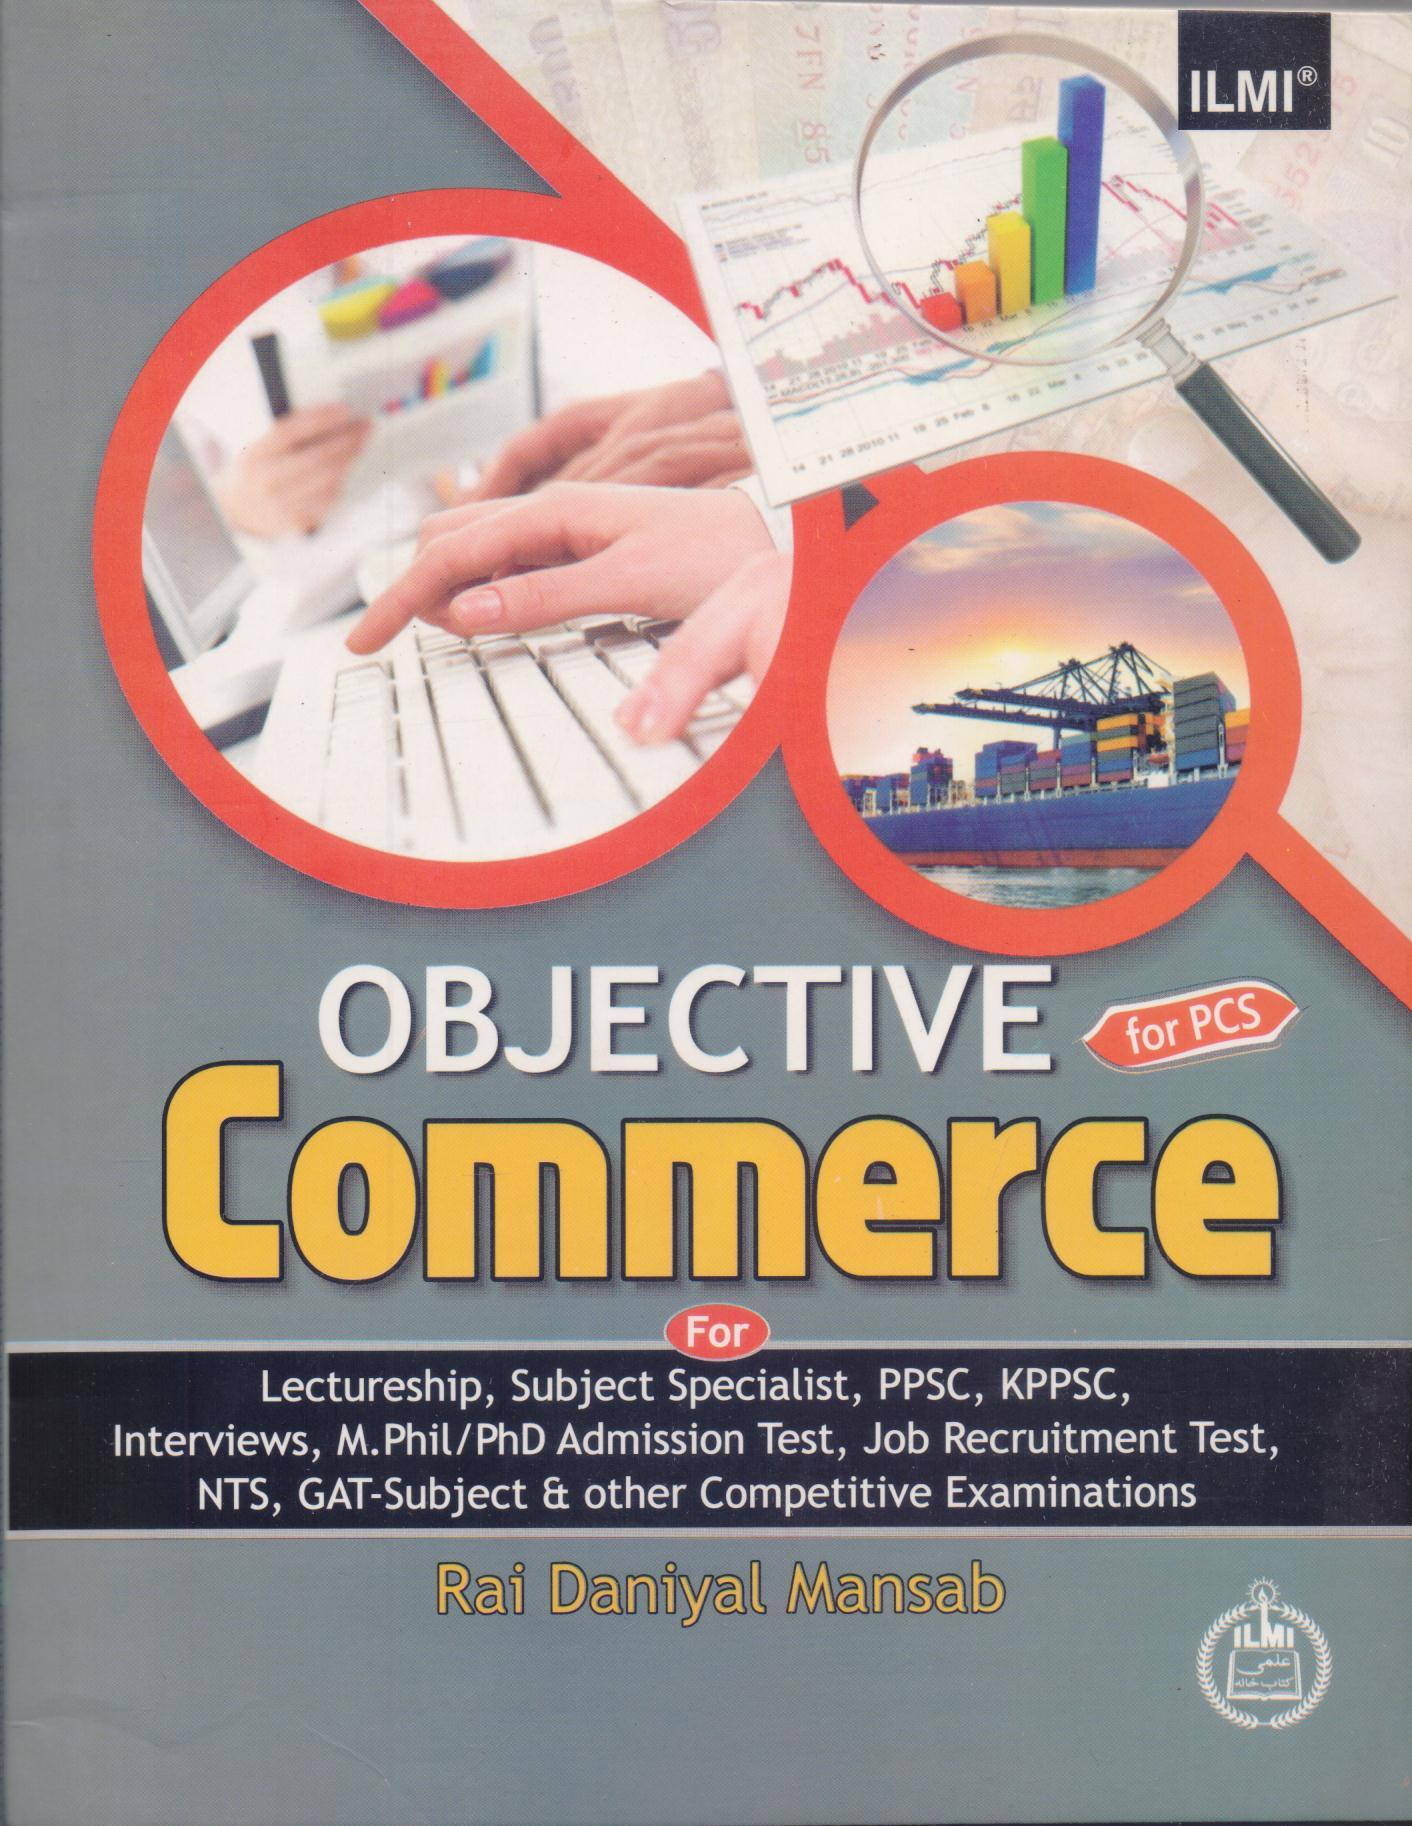 ilmi Objective Commerce For PCS, Lectureship, Subject Specialist, PPSC,  KPPSC, Interviews, Job Recruitment Test, NTS & Competitive Examinations by  Rai